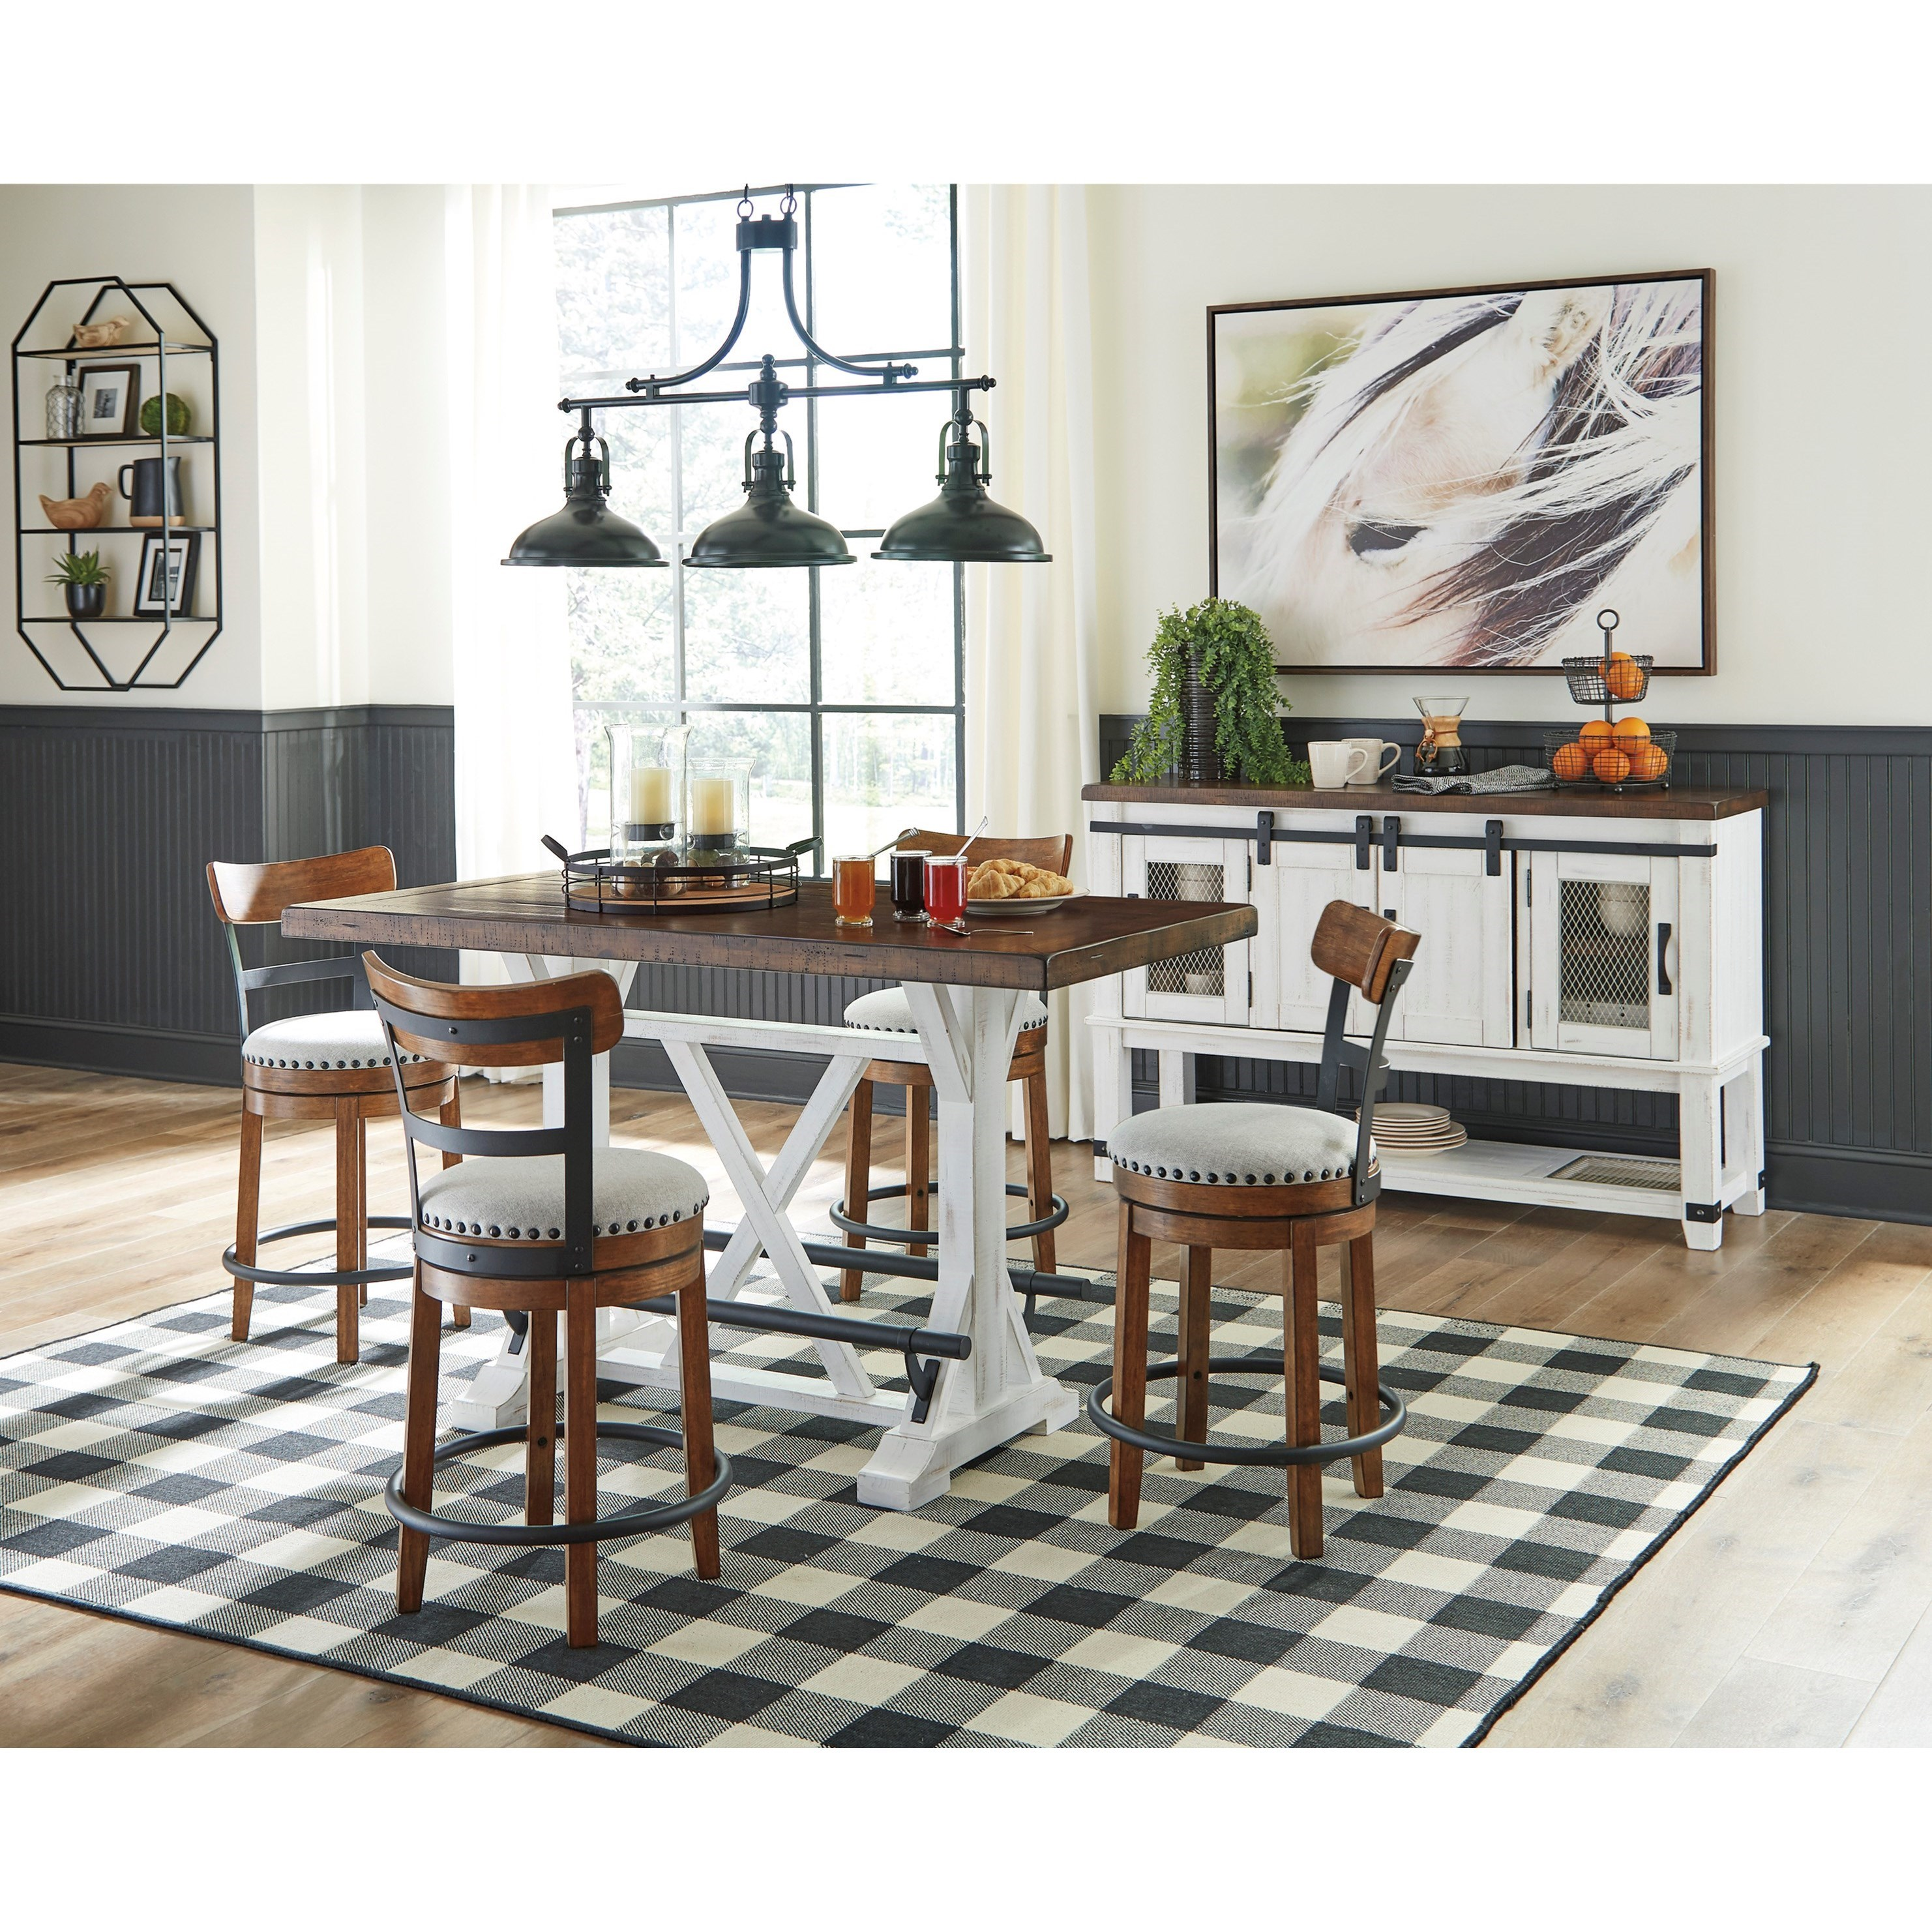 Valebeck Casual Dining Room Group by Signature Design by Ashley at Northeast Factory Direct